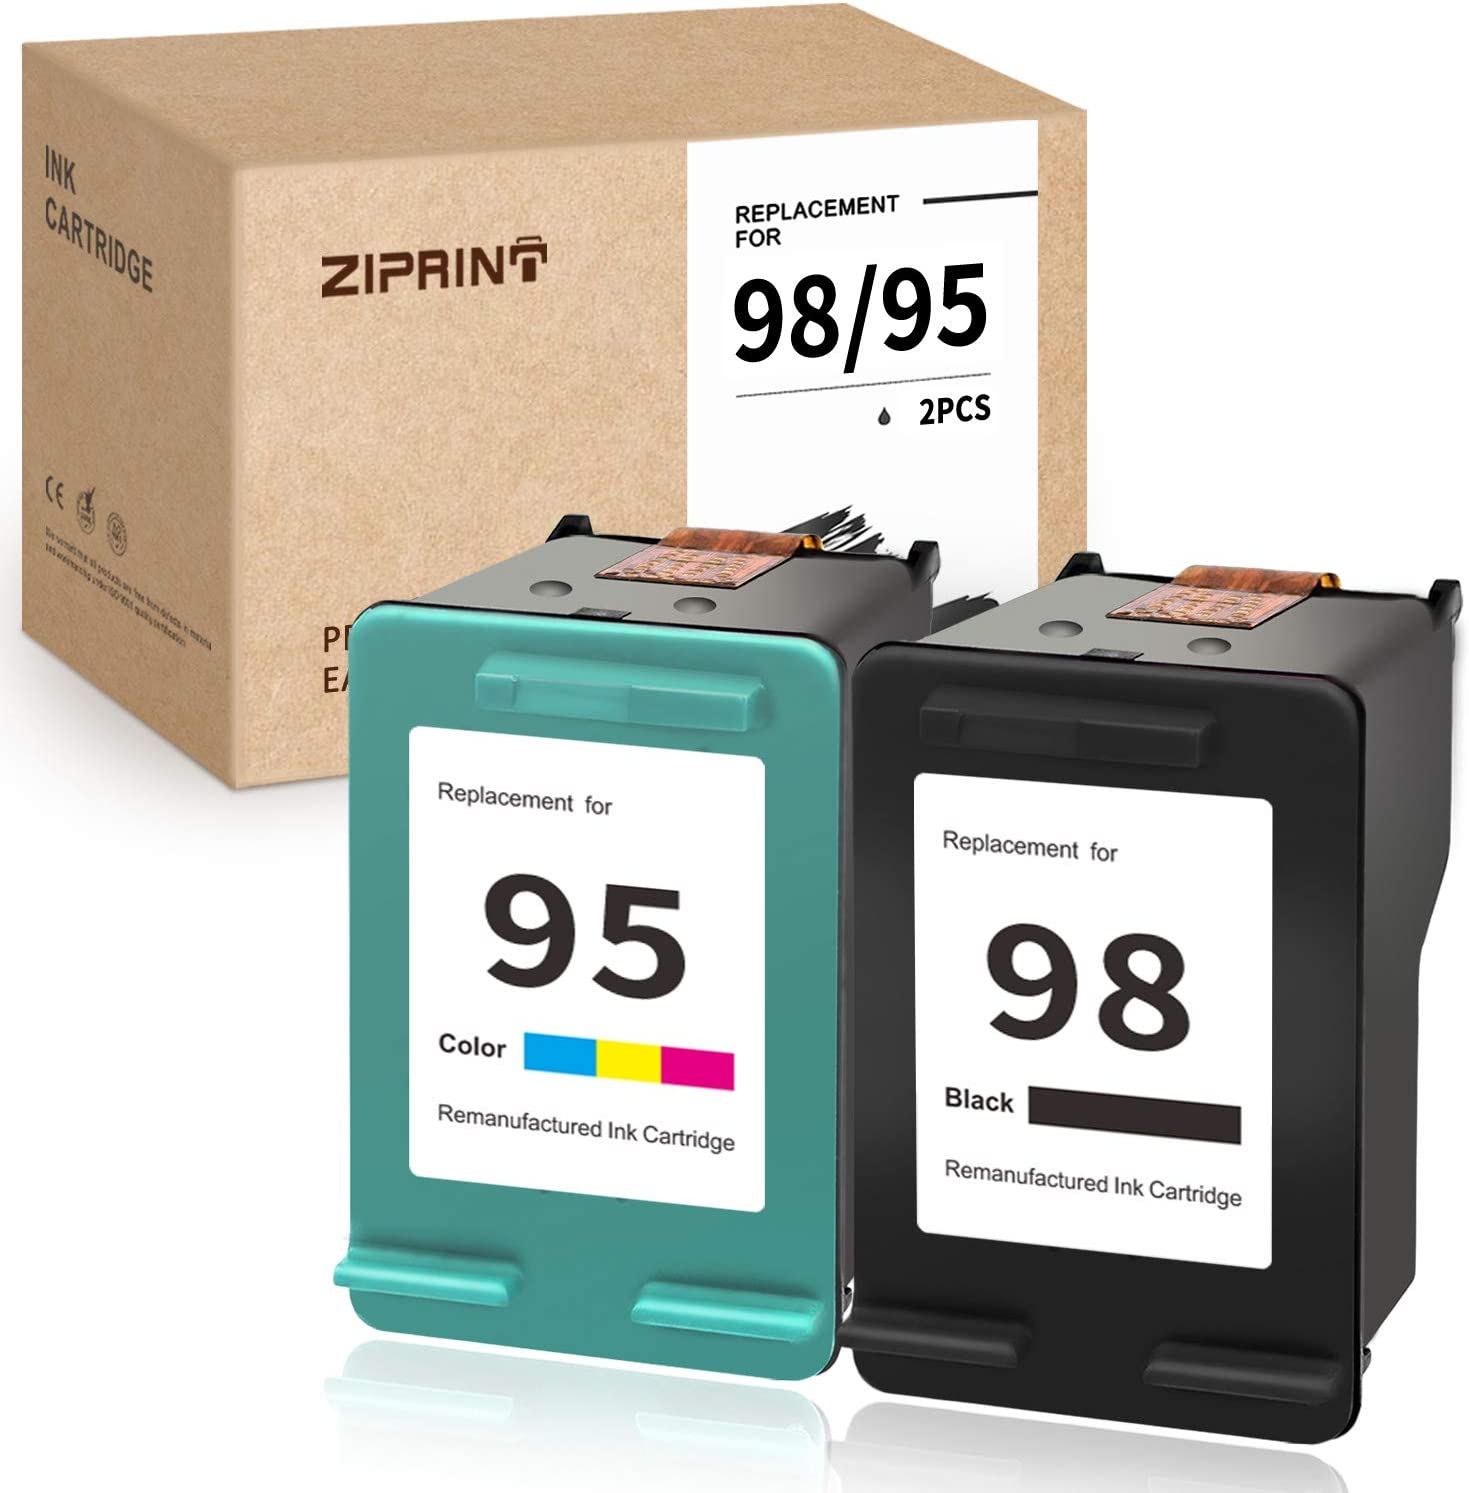 ZIPRINT Remanufactured Ink Cartridges Replacement for HP 98 95 (C9364WN C8766WN) for Deskjet 6940 6988 Officejet 100 150 H470 Photosmart 2575 C4150 C4180 8049 8050 2 Pack